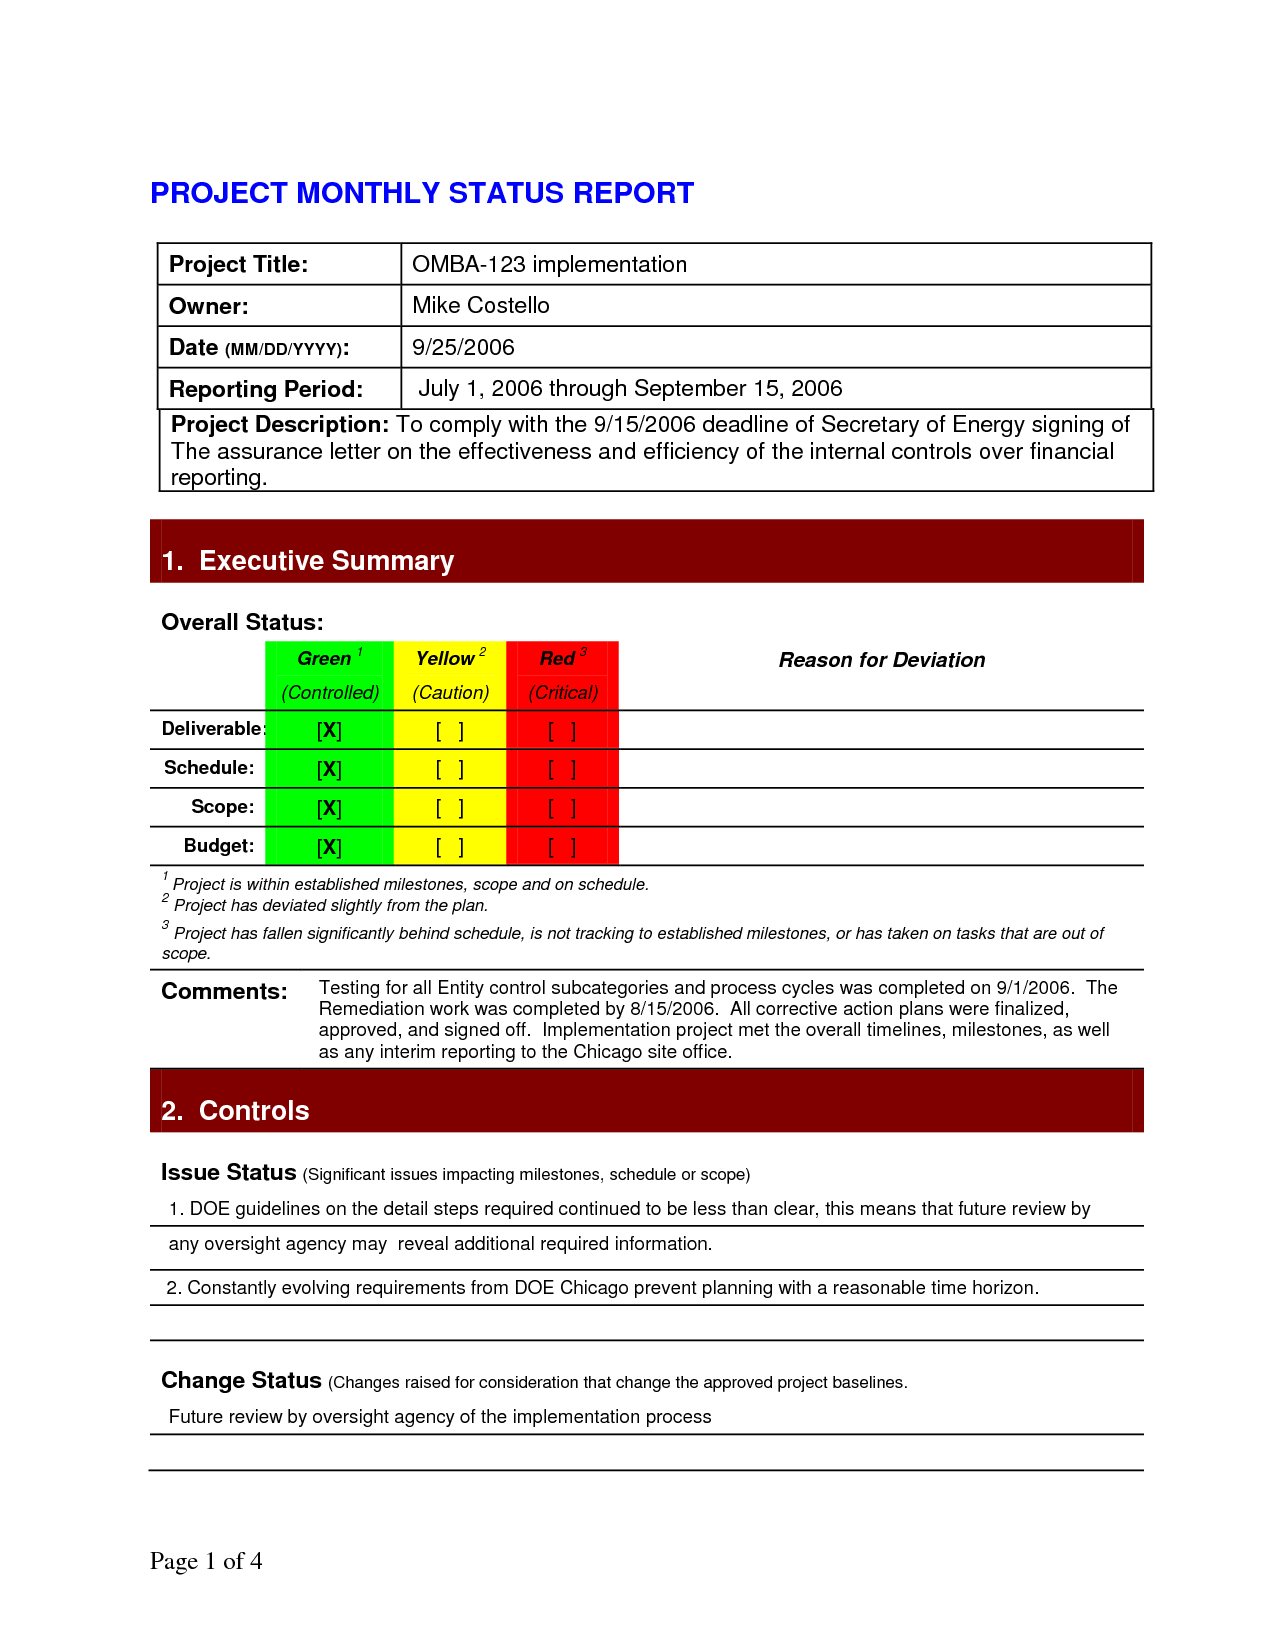 Pinlesedi Matlholwa On Templates | Progress Report throughout Implementation Report Template